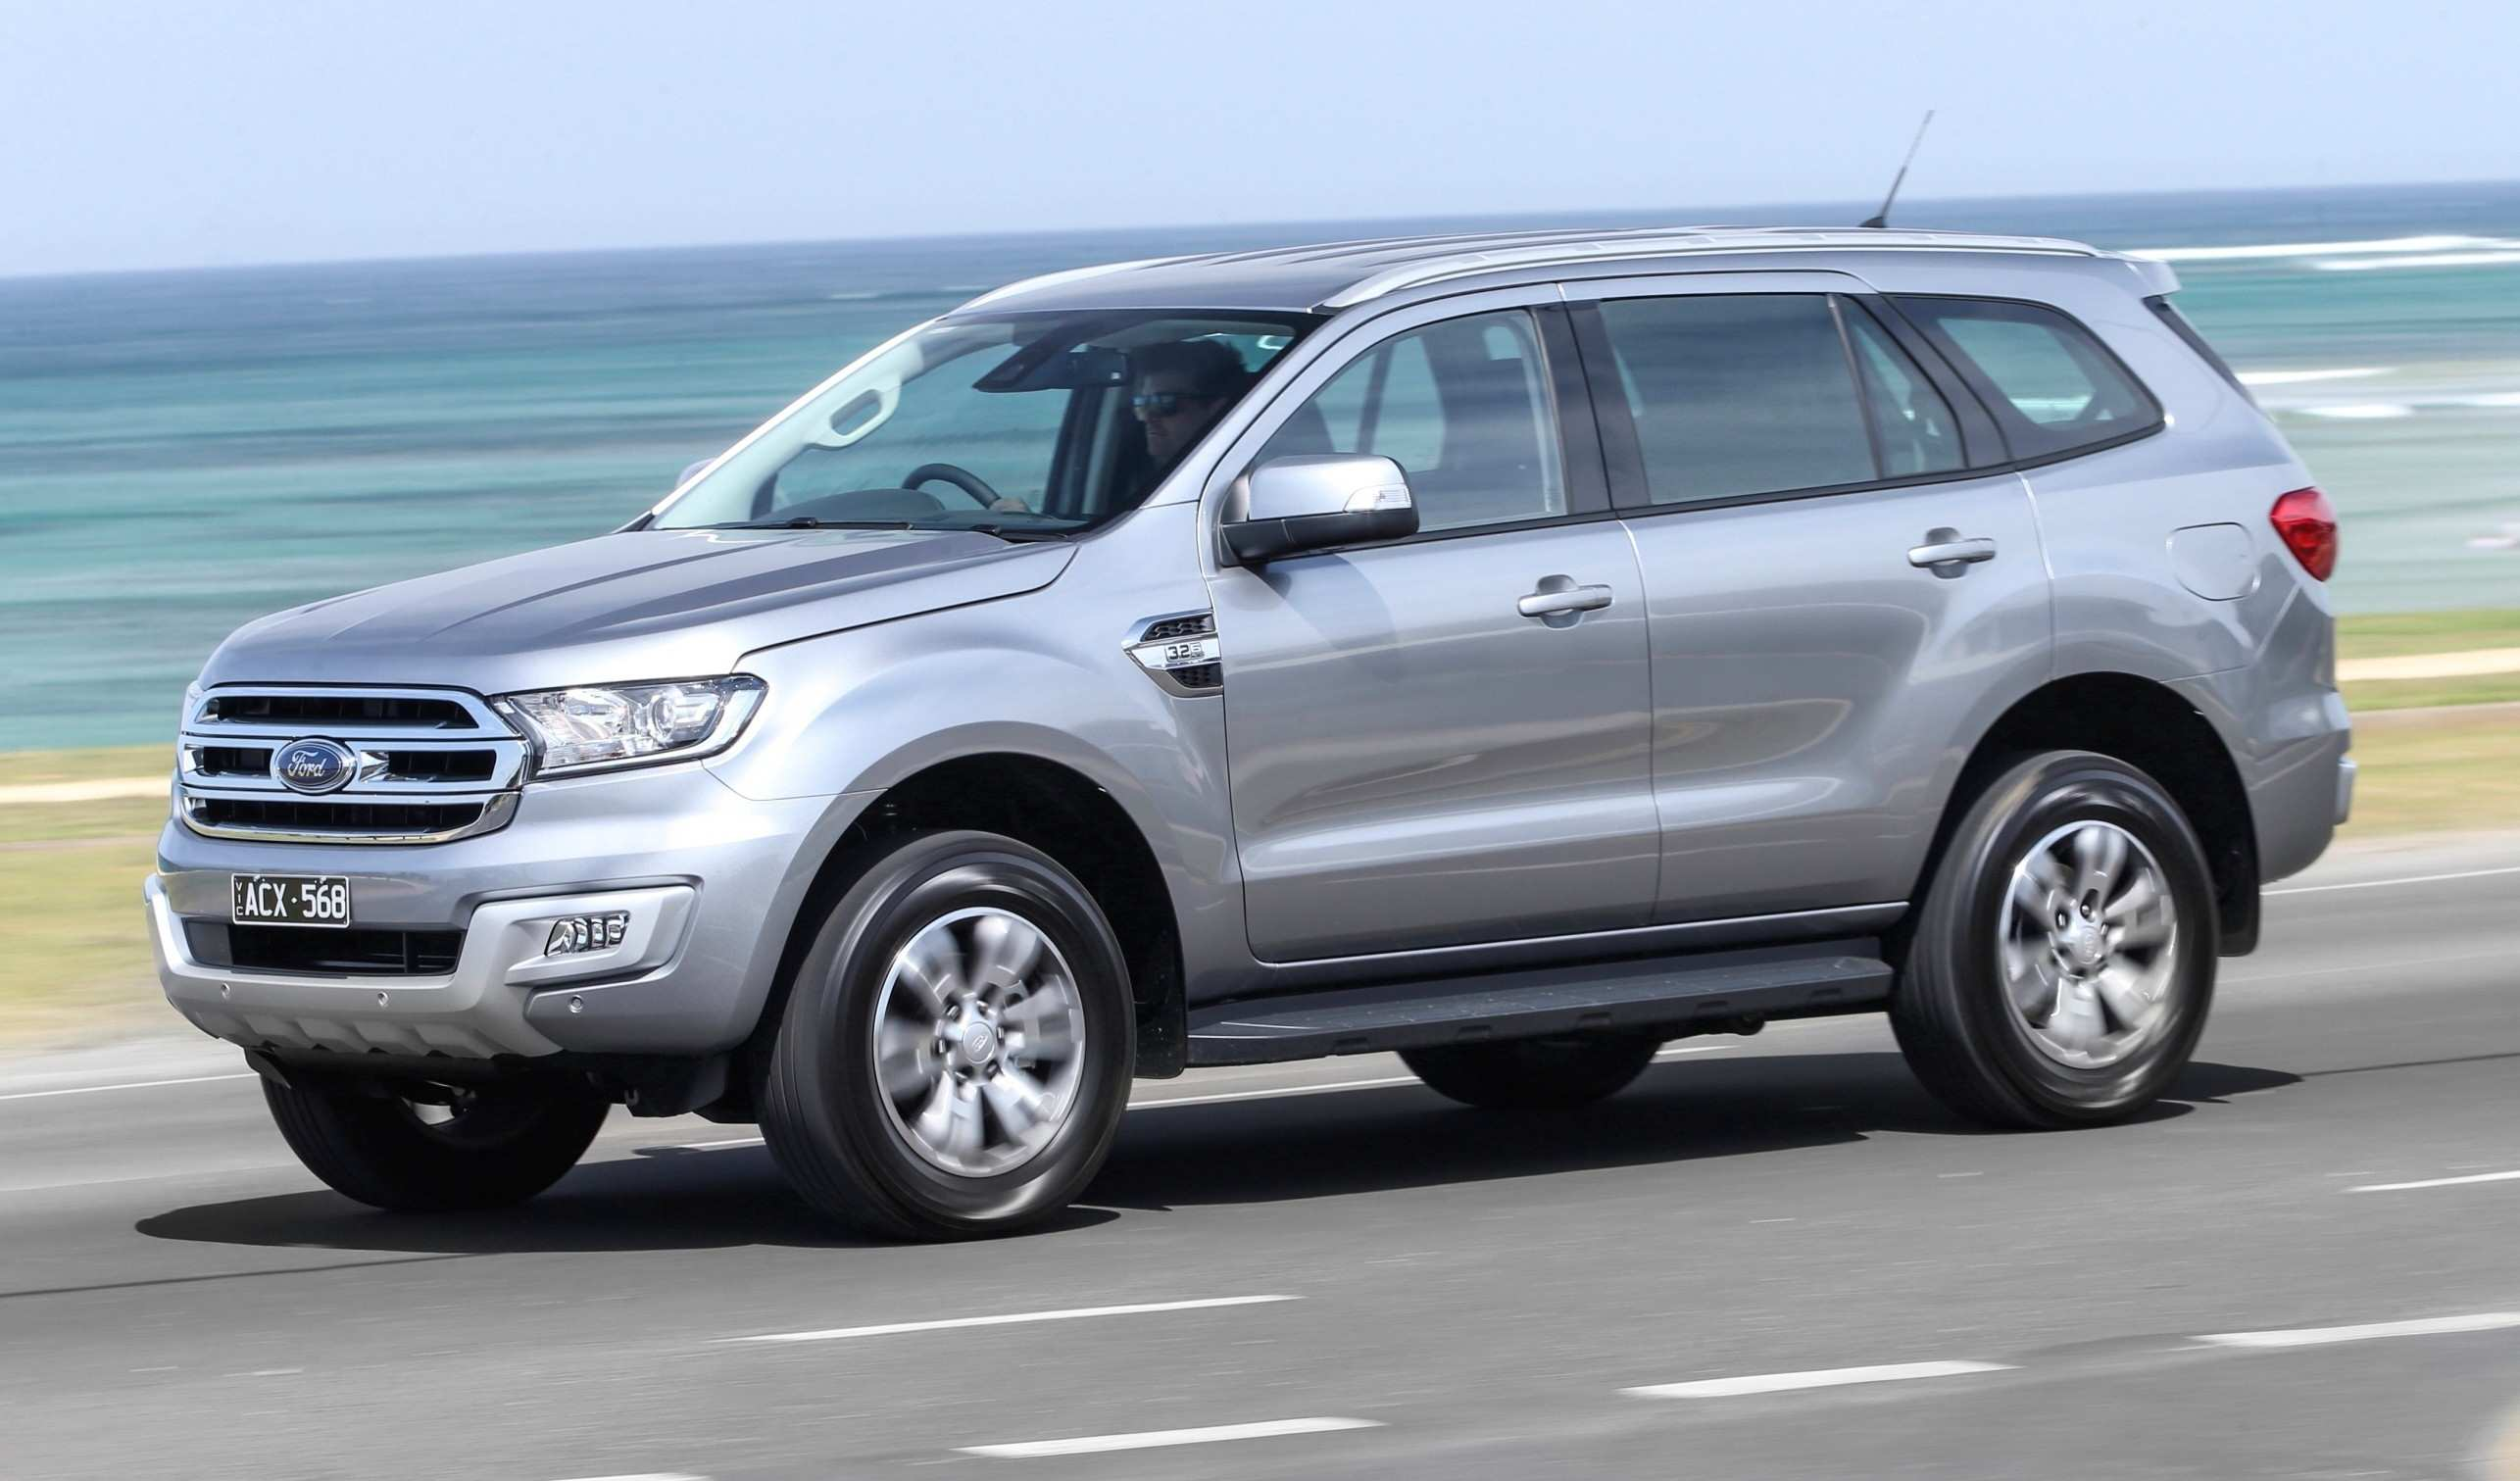 67 New 2020 Ford Everest Exterior